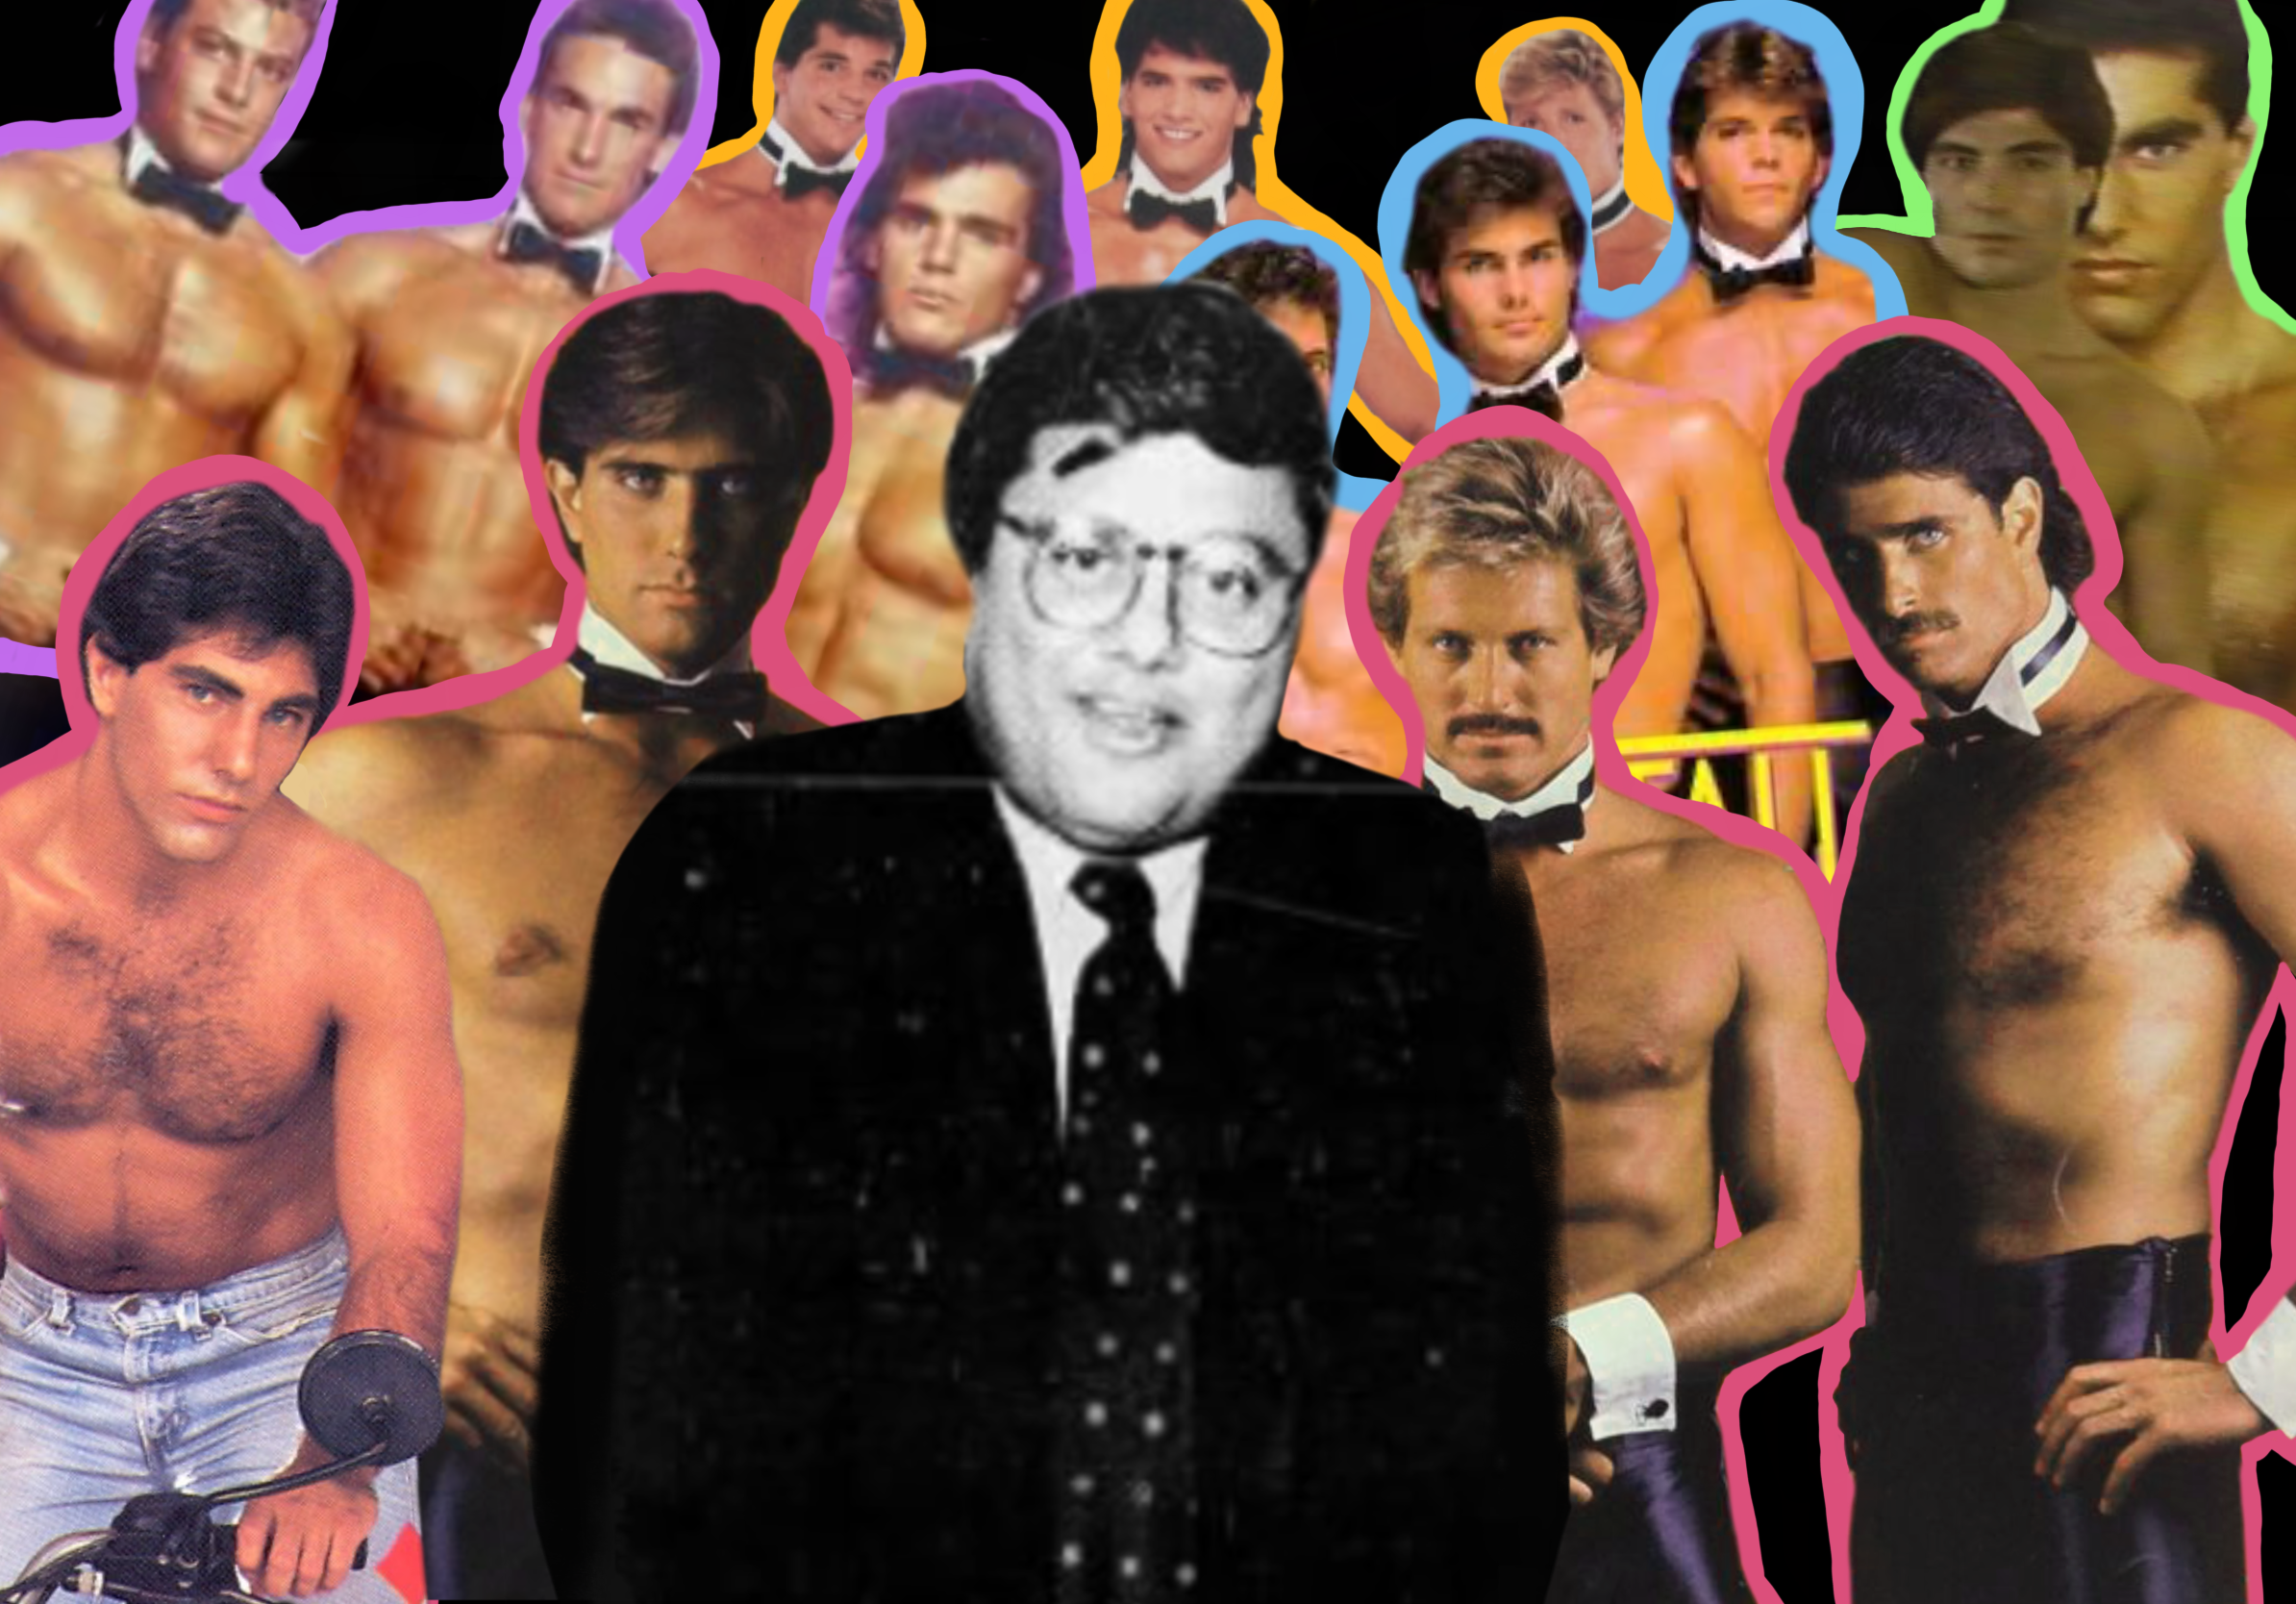 Steve Banerjee opened Chippendales in 1978.